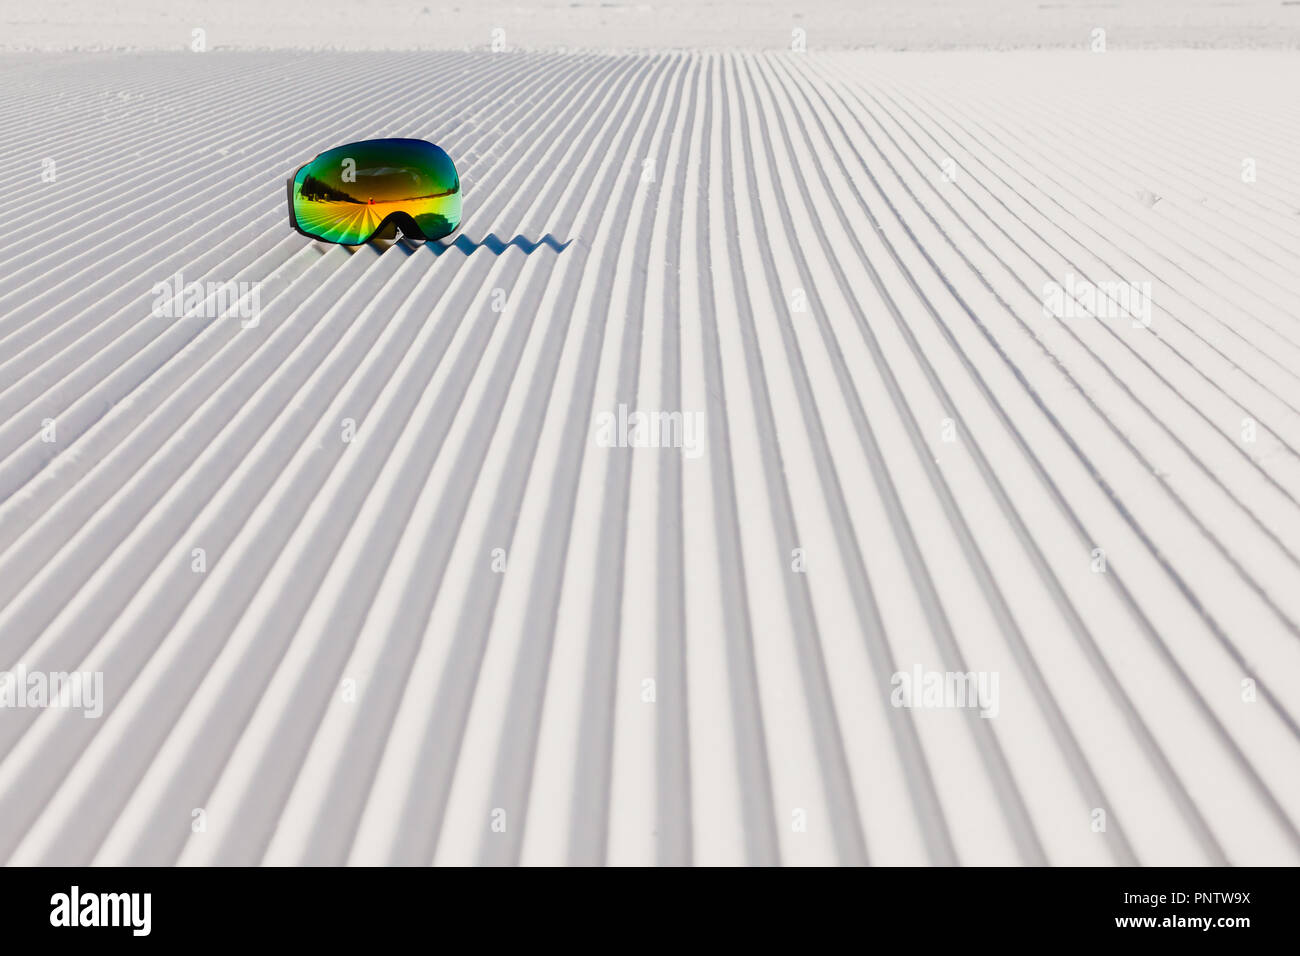 Close-up view of new groomed snow on empty ski slope and ski goggles on it - Stock Image